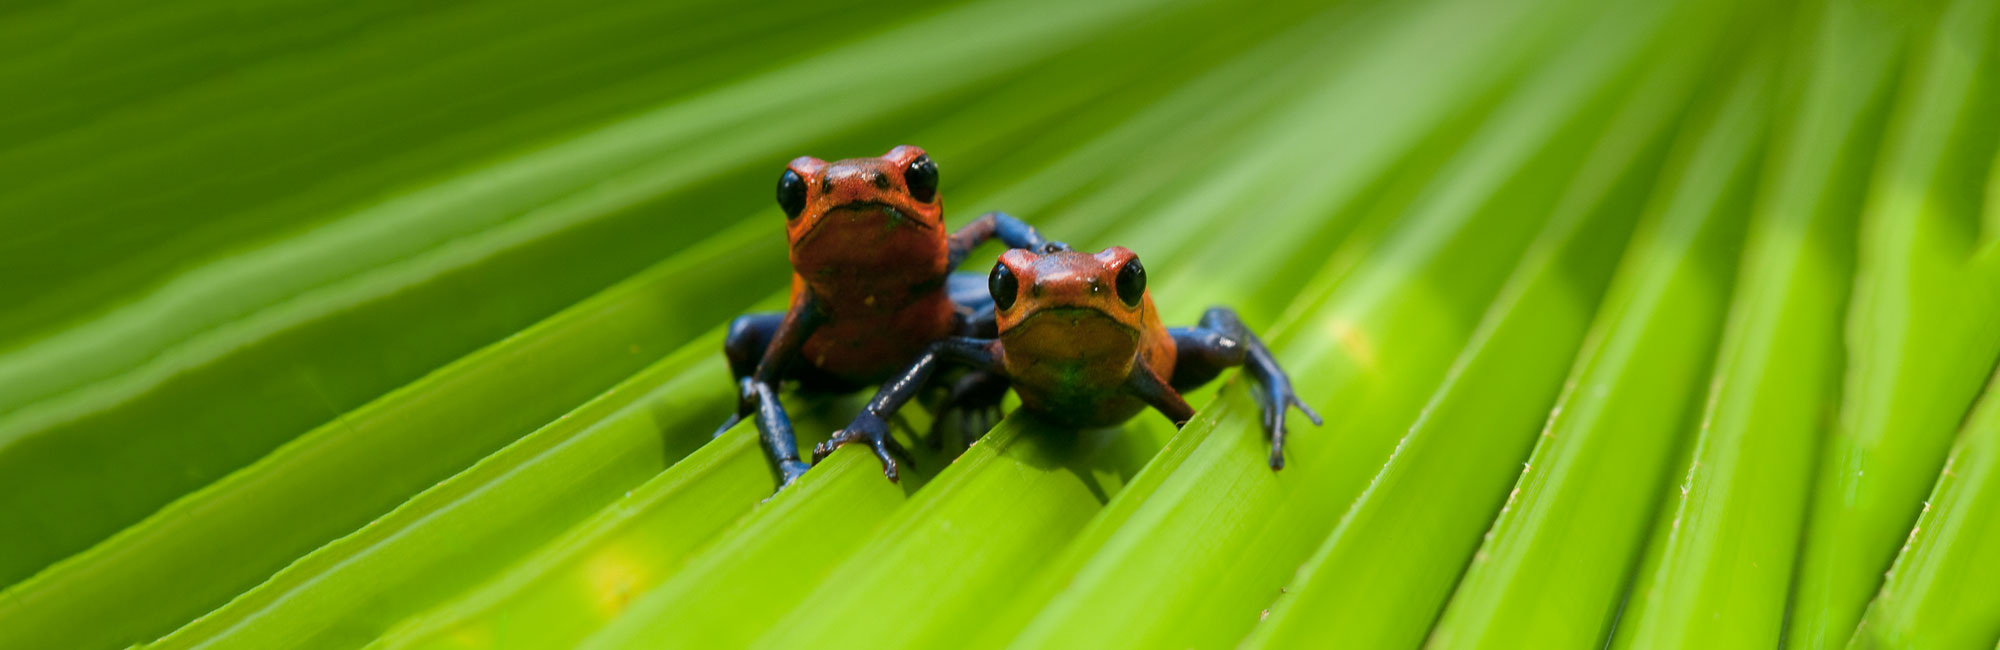 Blue-jeans-tree-frogs-by-Greg-Basco.jpg